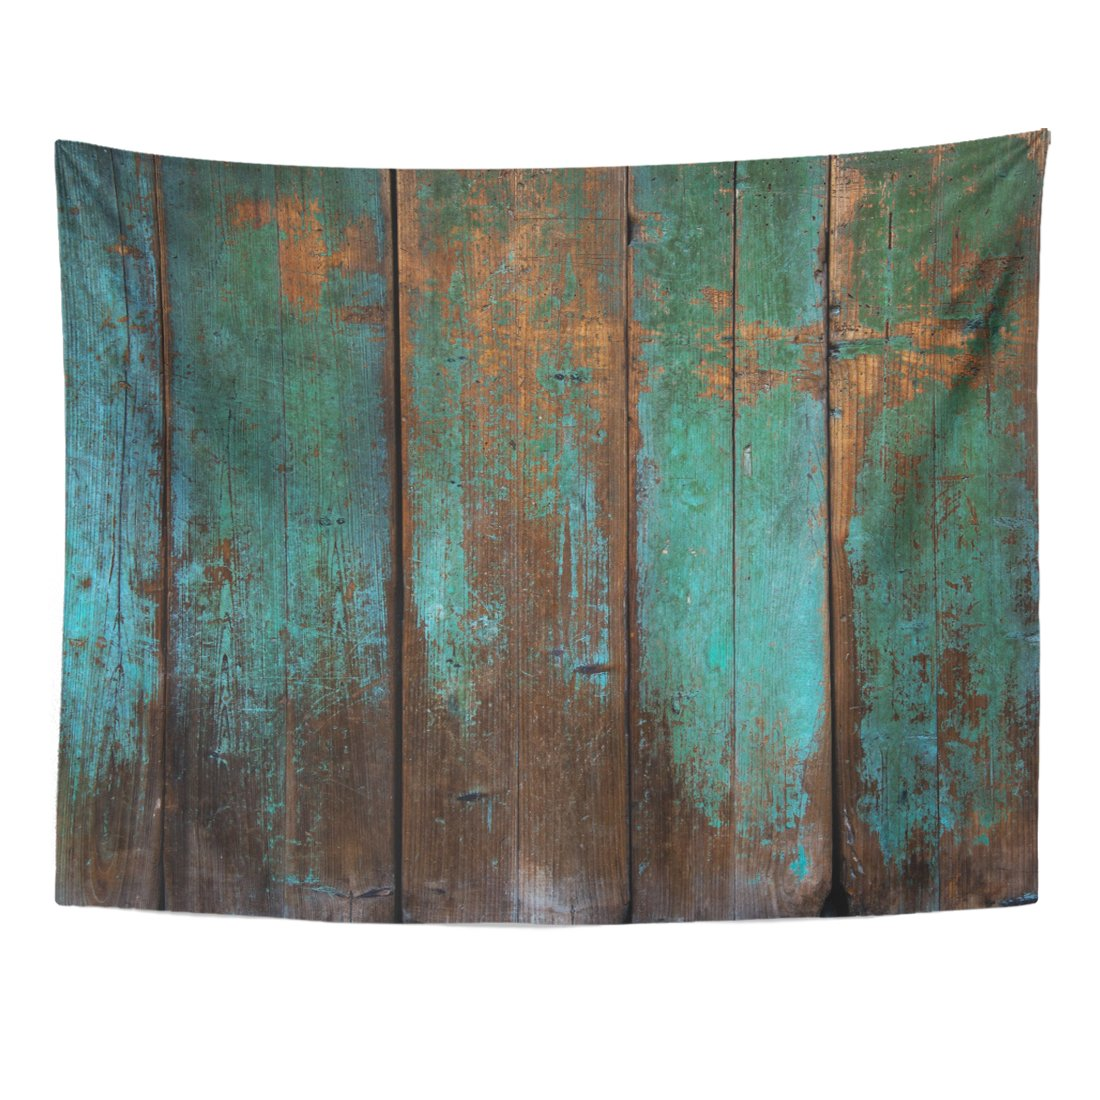 Emvency Tapestry Brown Wooden Old Grunge Wood Panels Used As Green Interior Paint Home Decor Wall Hanging for Living Room Bedroom Dorm 60x80 inches